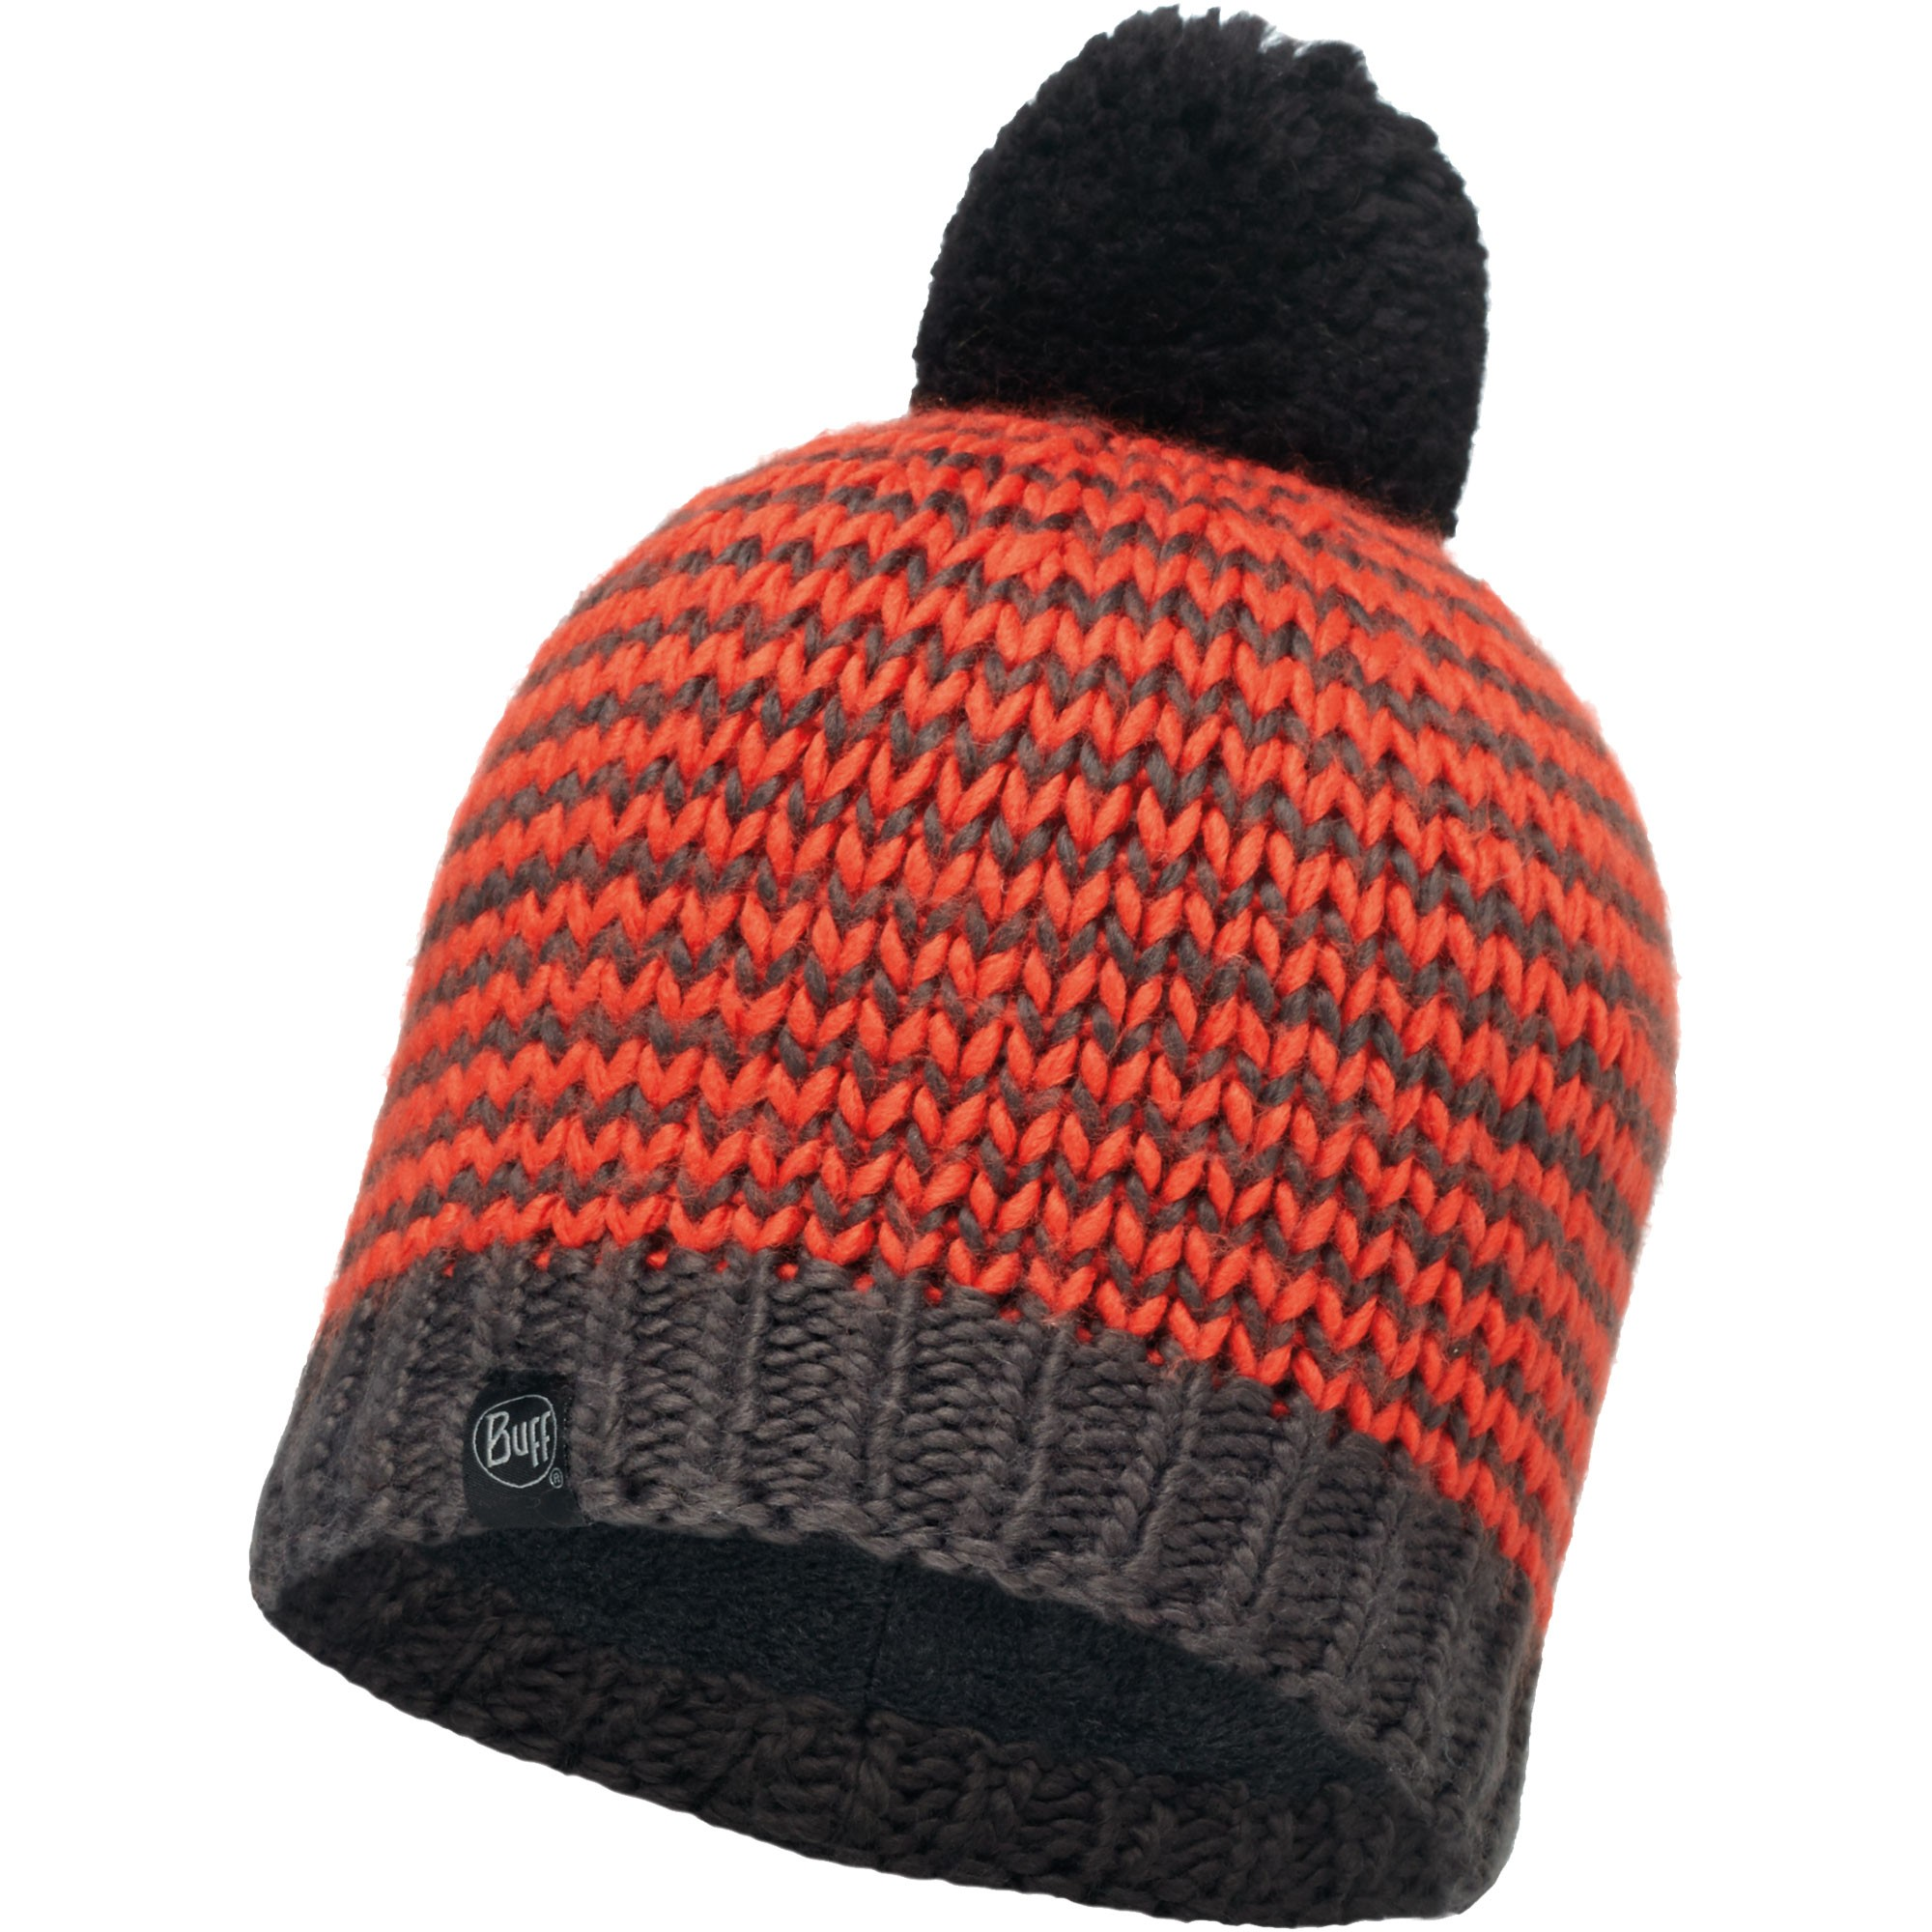 BUFF - Dorn Knitted Hat